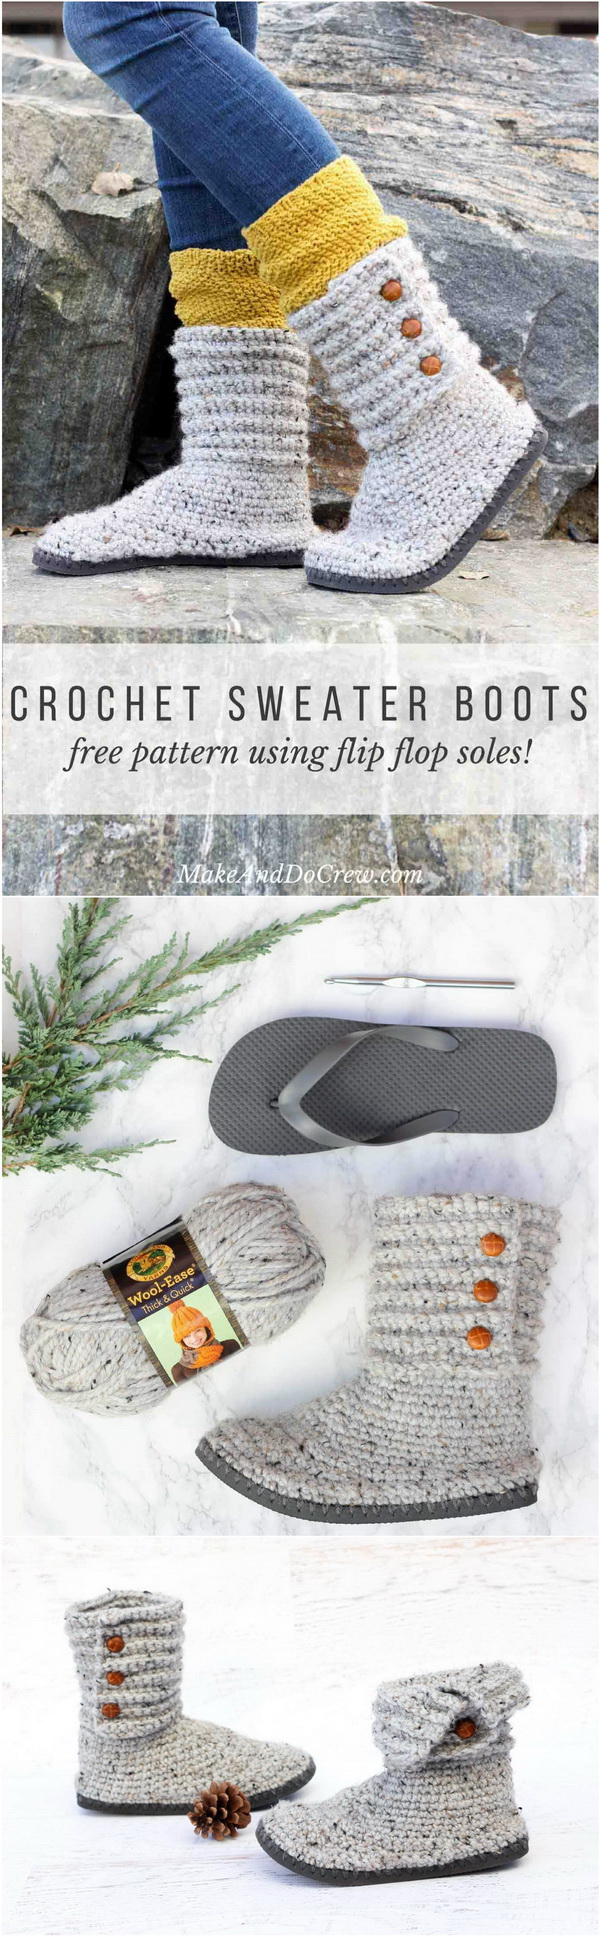 Crochet Sweater Boots With Flip Flops. Transform a cheap pair of flip flops into these excellent sweater boots that look like expensive store-bought shoes.